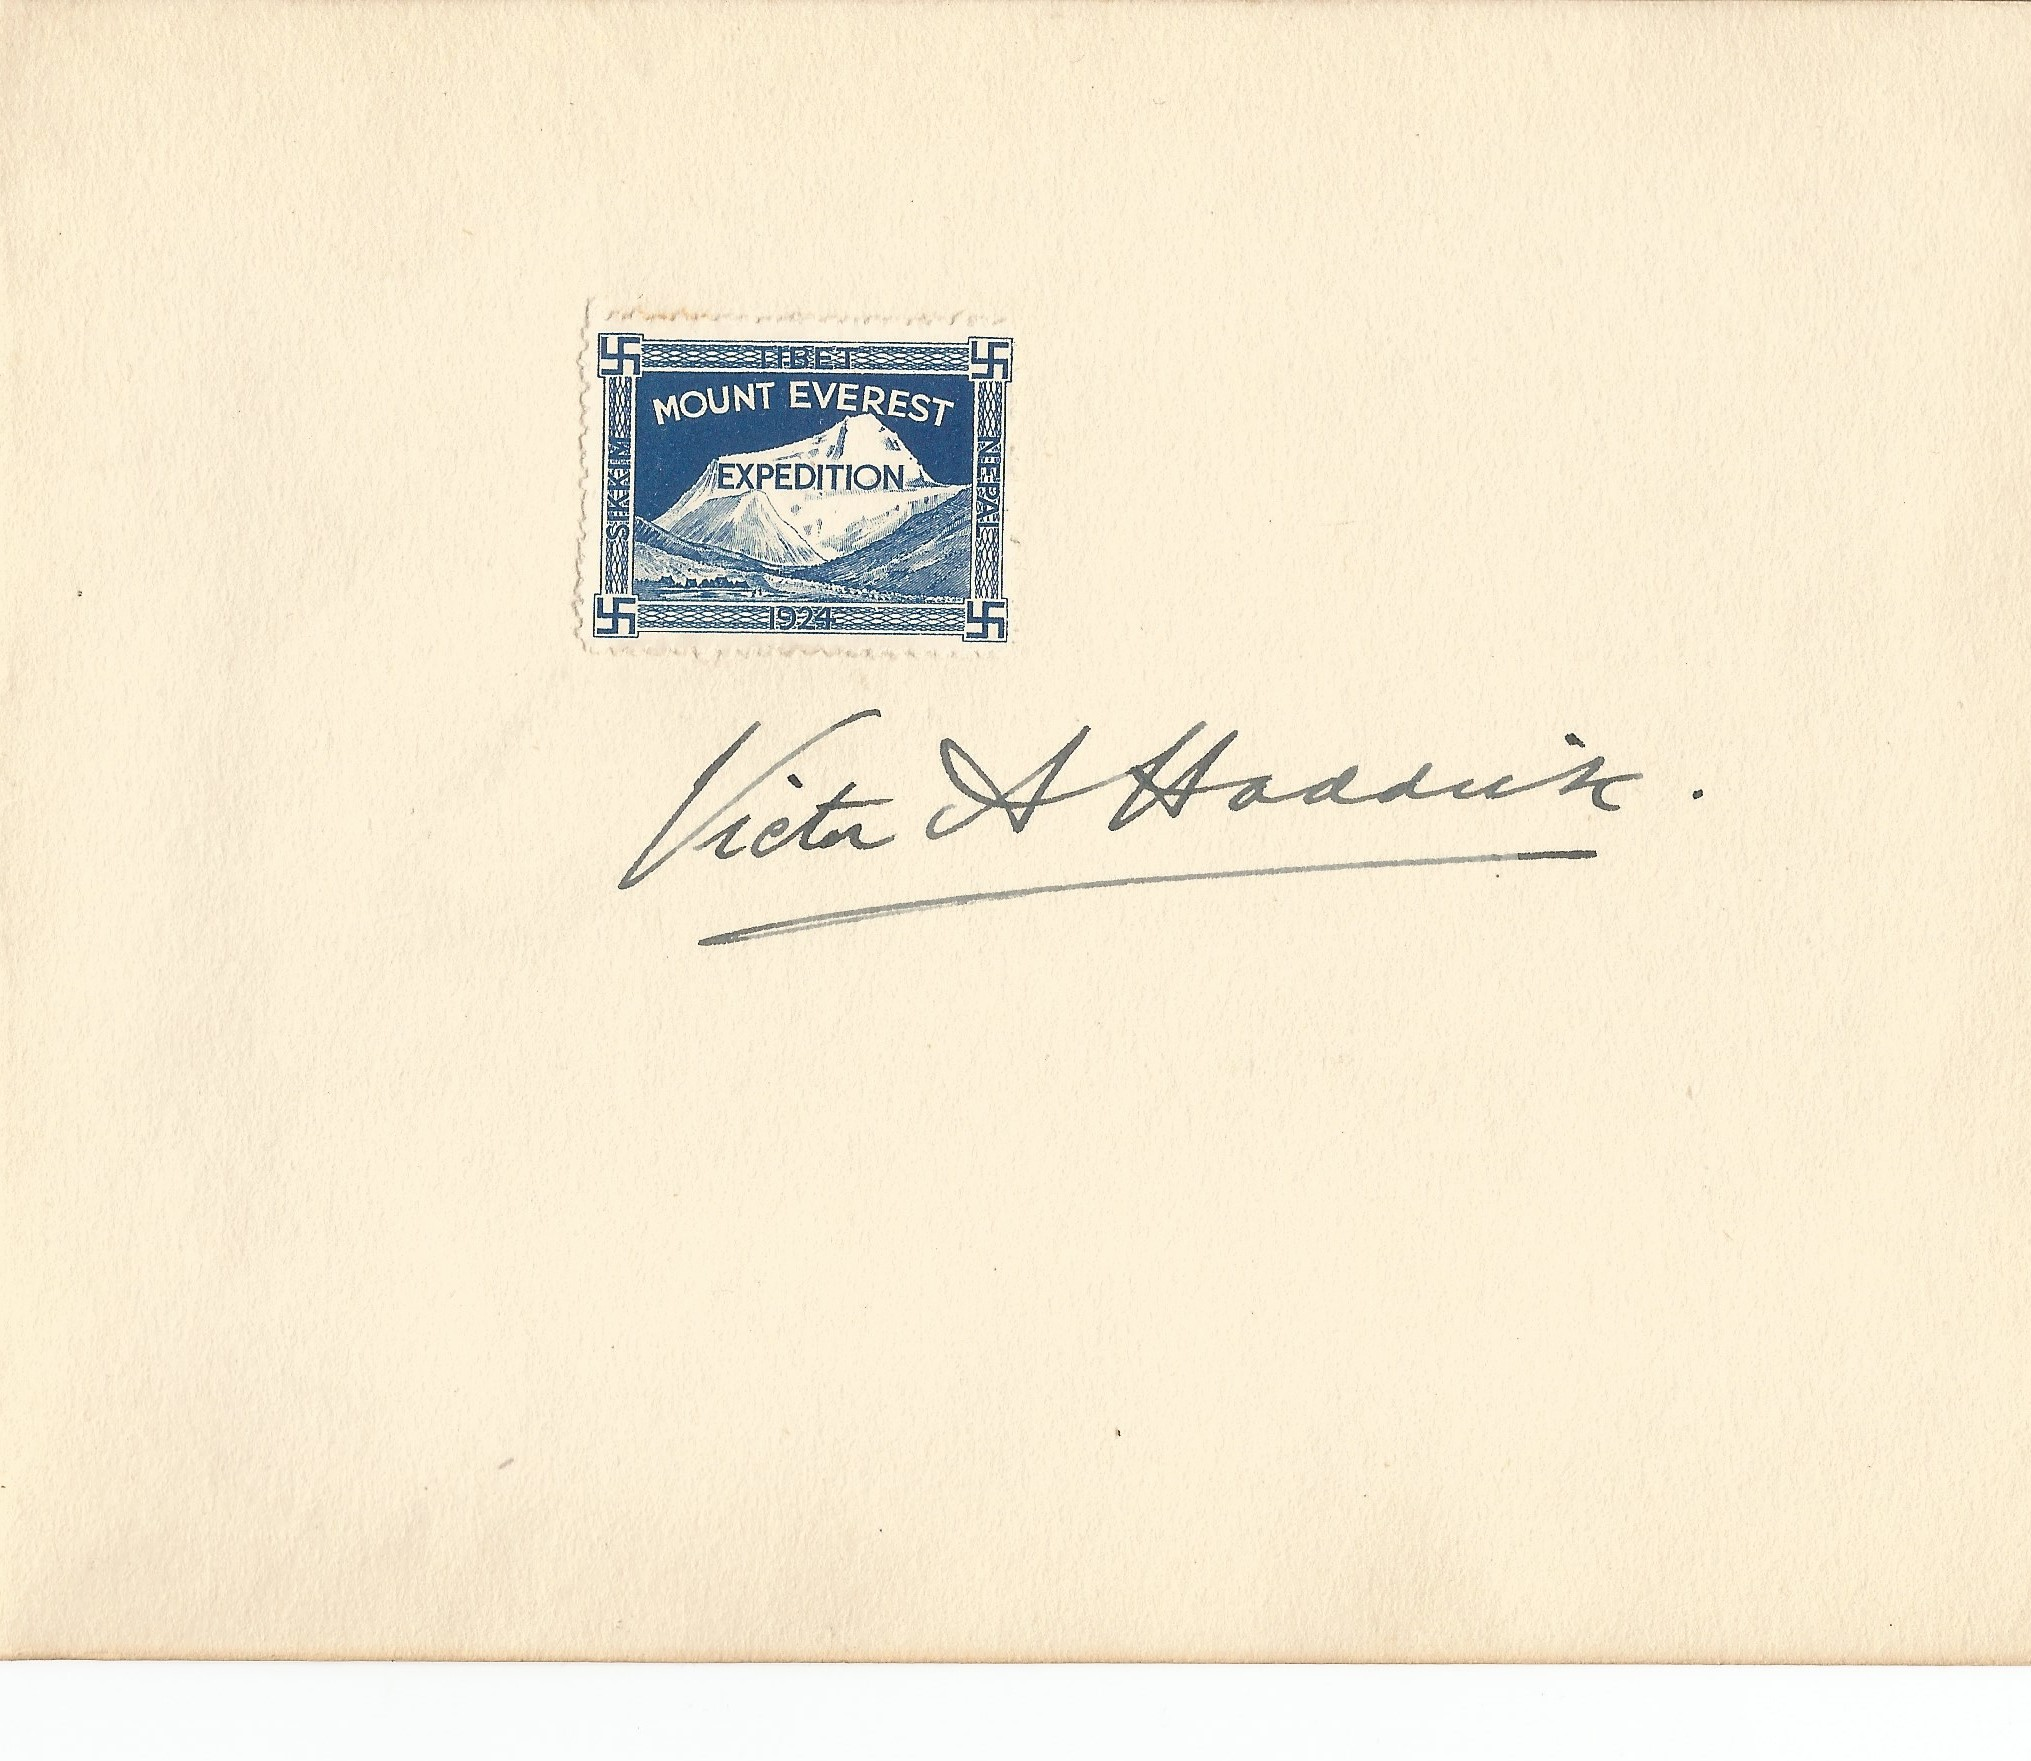 Victor Haddick signed page. Victor Haddick was the Head of Tractor unit on 1924 Everest Expedition